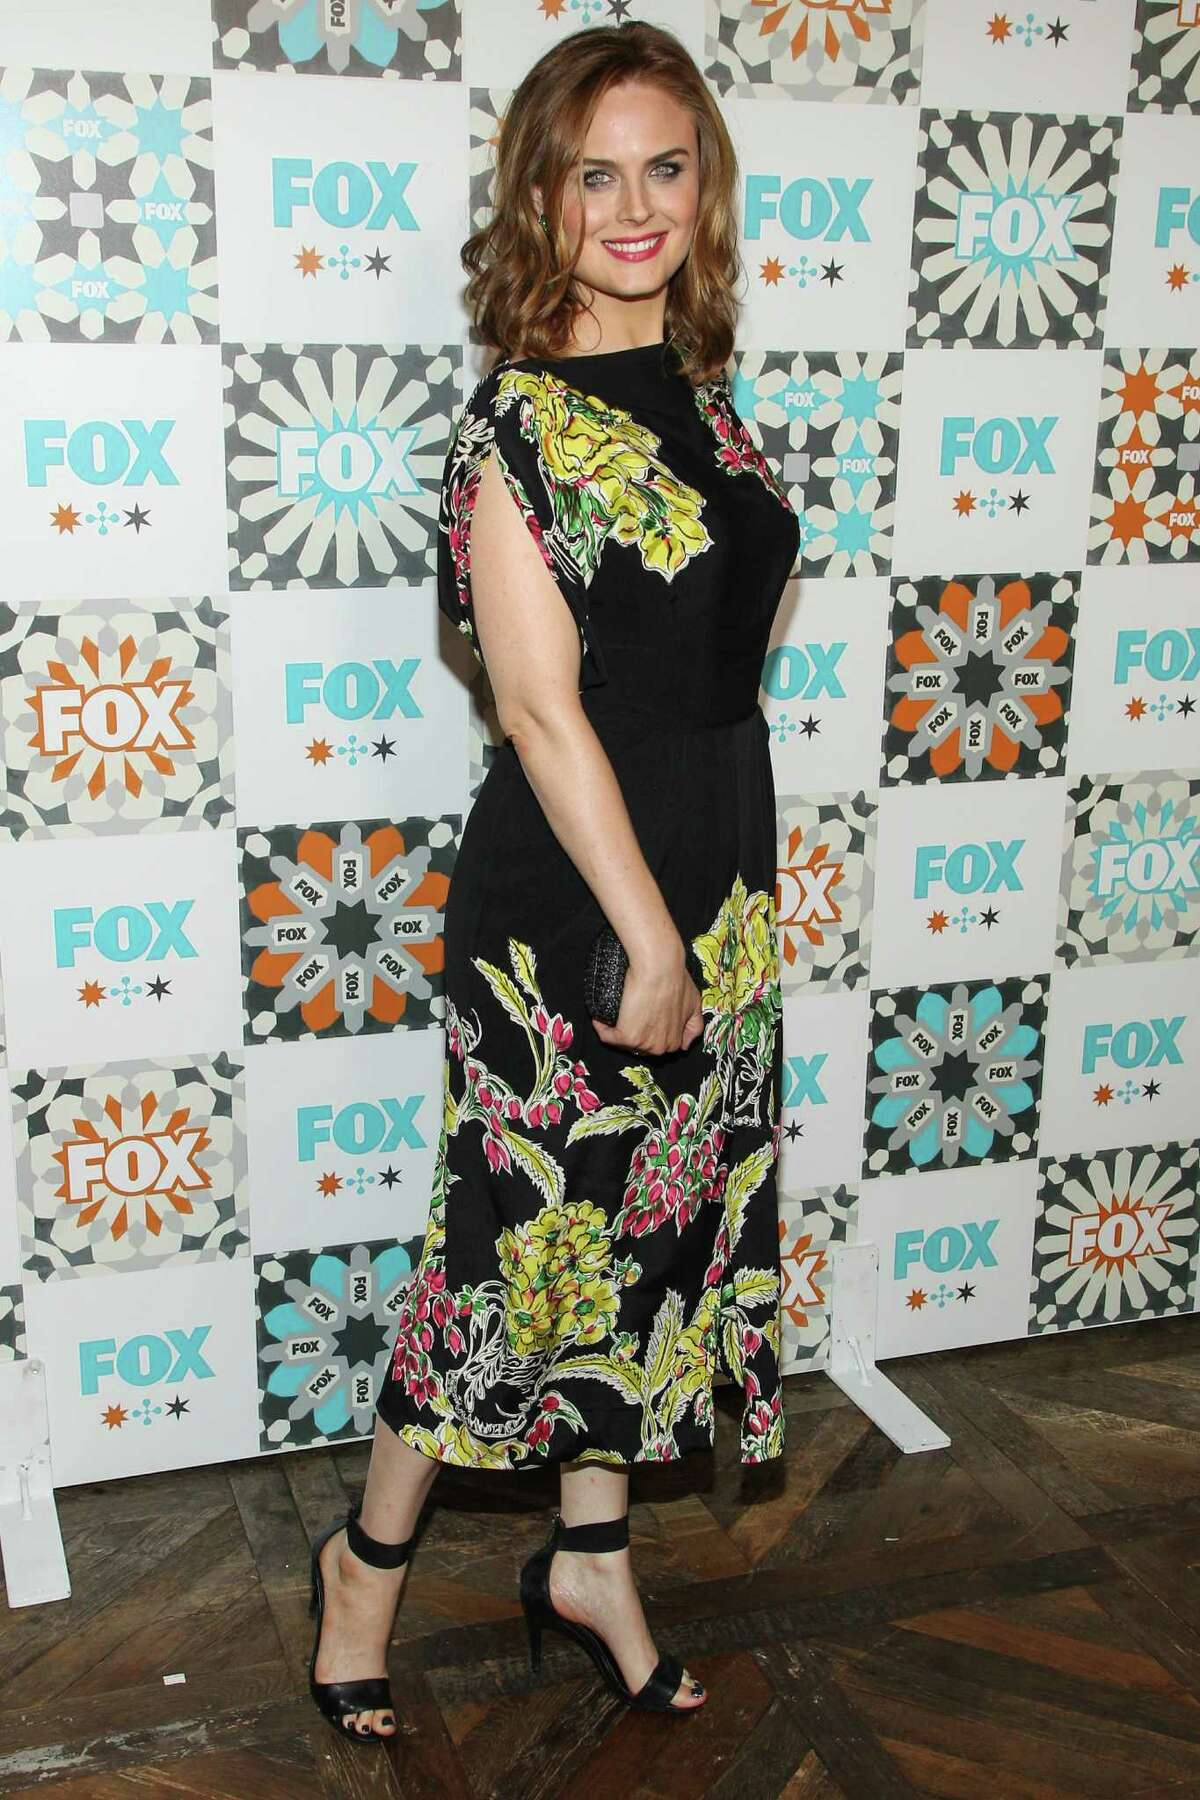 Emily Deschanel attends the FOX Summer TCA All-Star Party at Soho House on Sunday, July 20, 2014, in West Hollywood, Calif. (Photo by Paul A. Hebert/Invision/AP) ORG XMIT: CAPH104